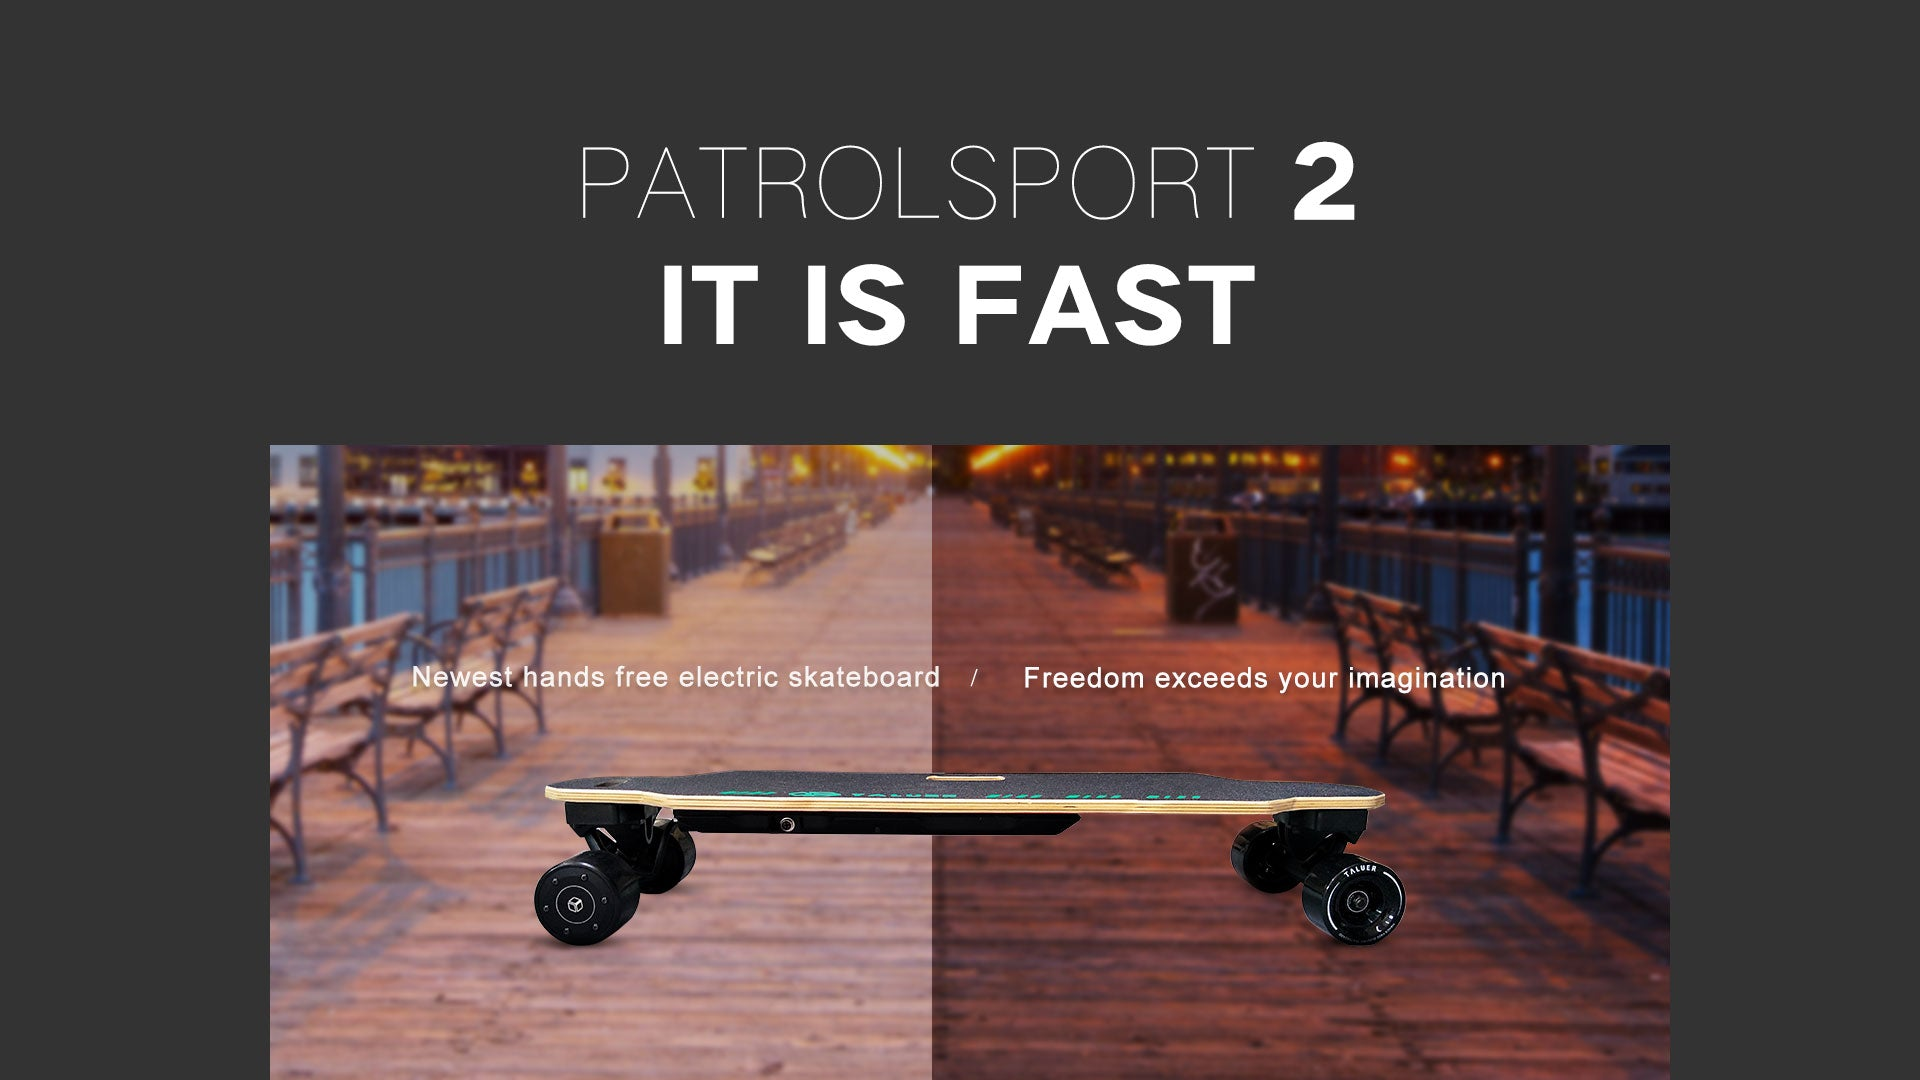 electric skateboard with slogan